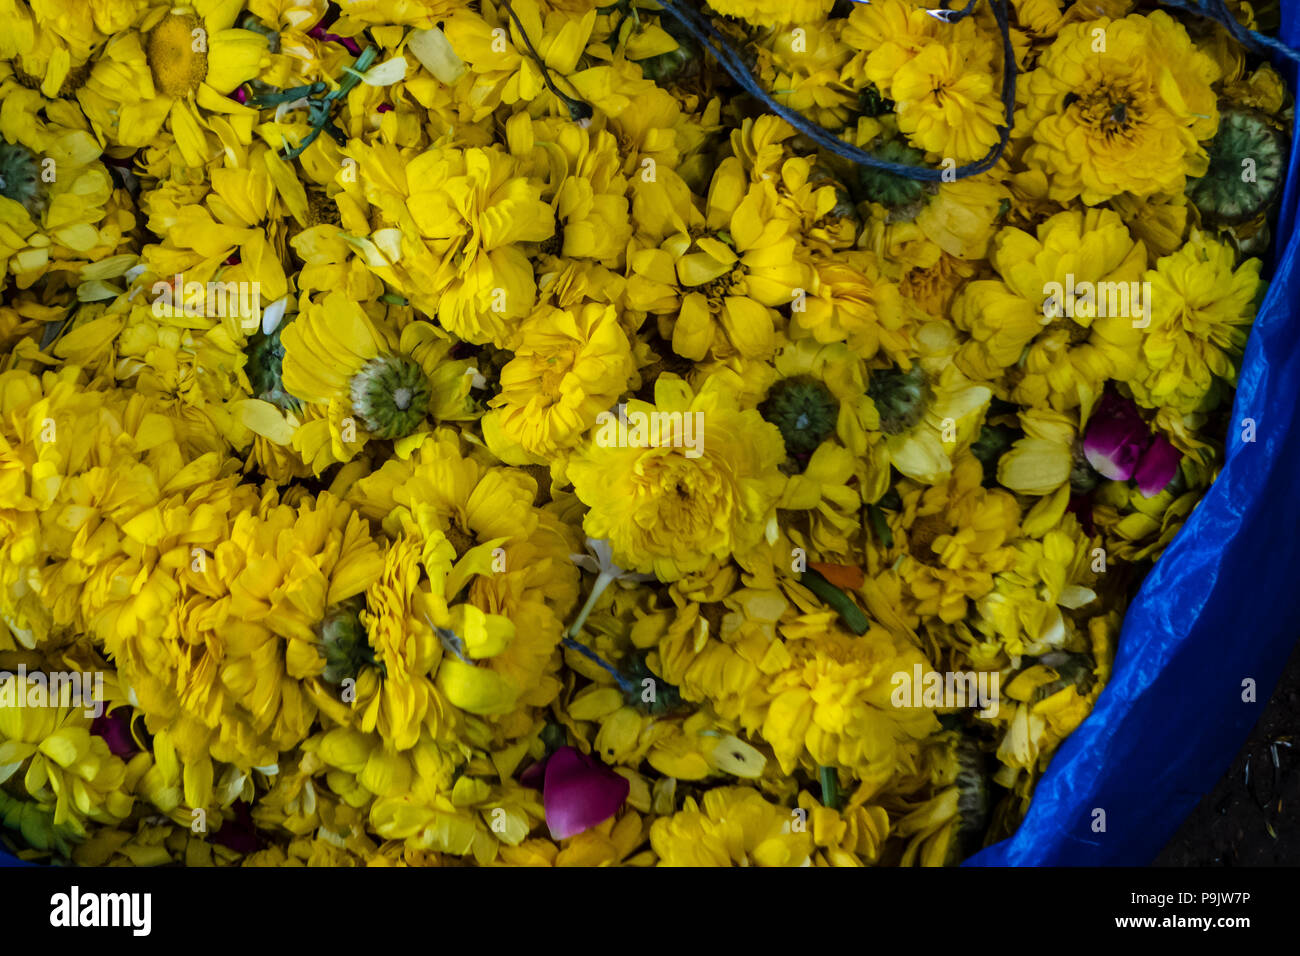 Basket of yellow flowers in a market in India Stock Photo